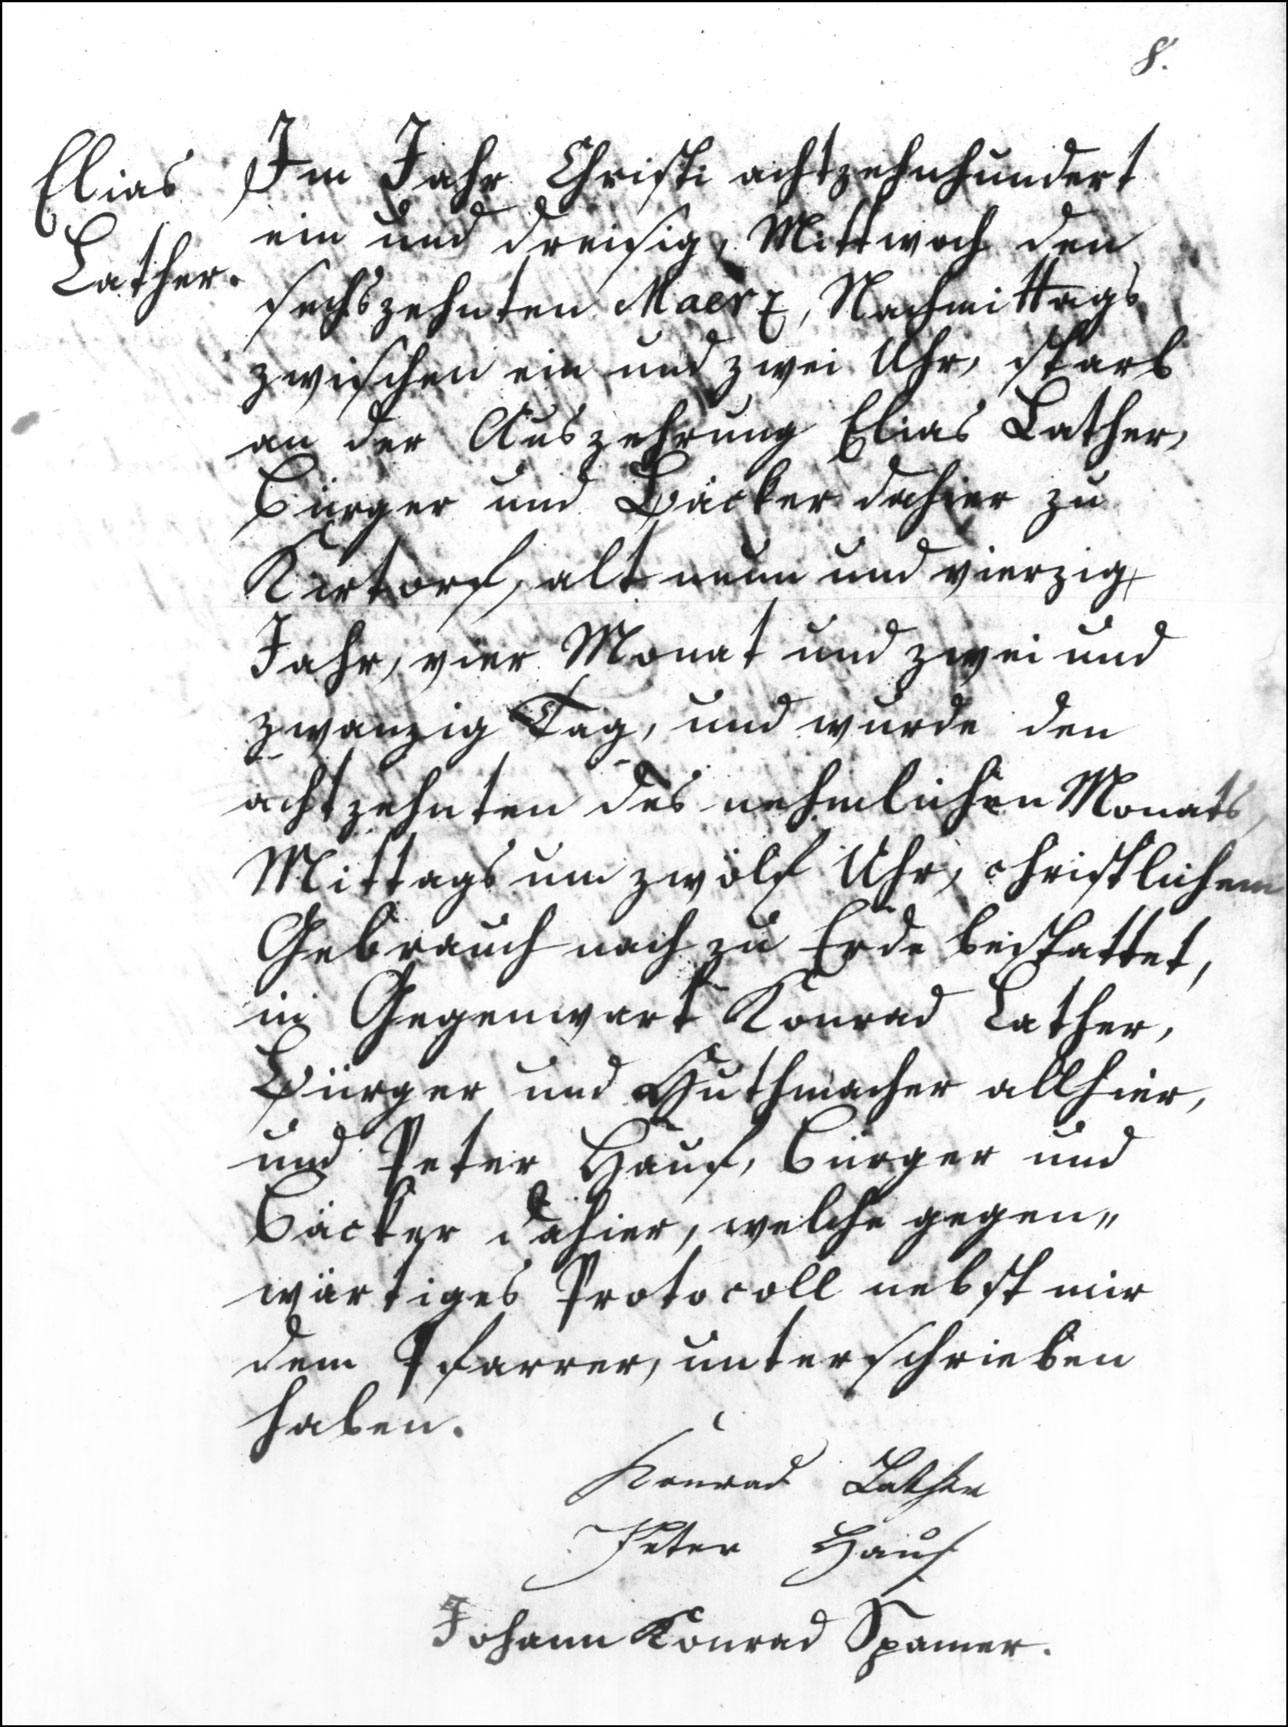 The Death and Burial Record of Elias Lather - 1831